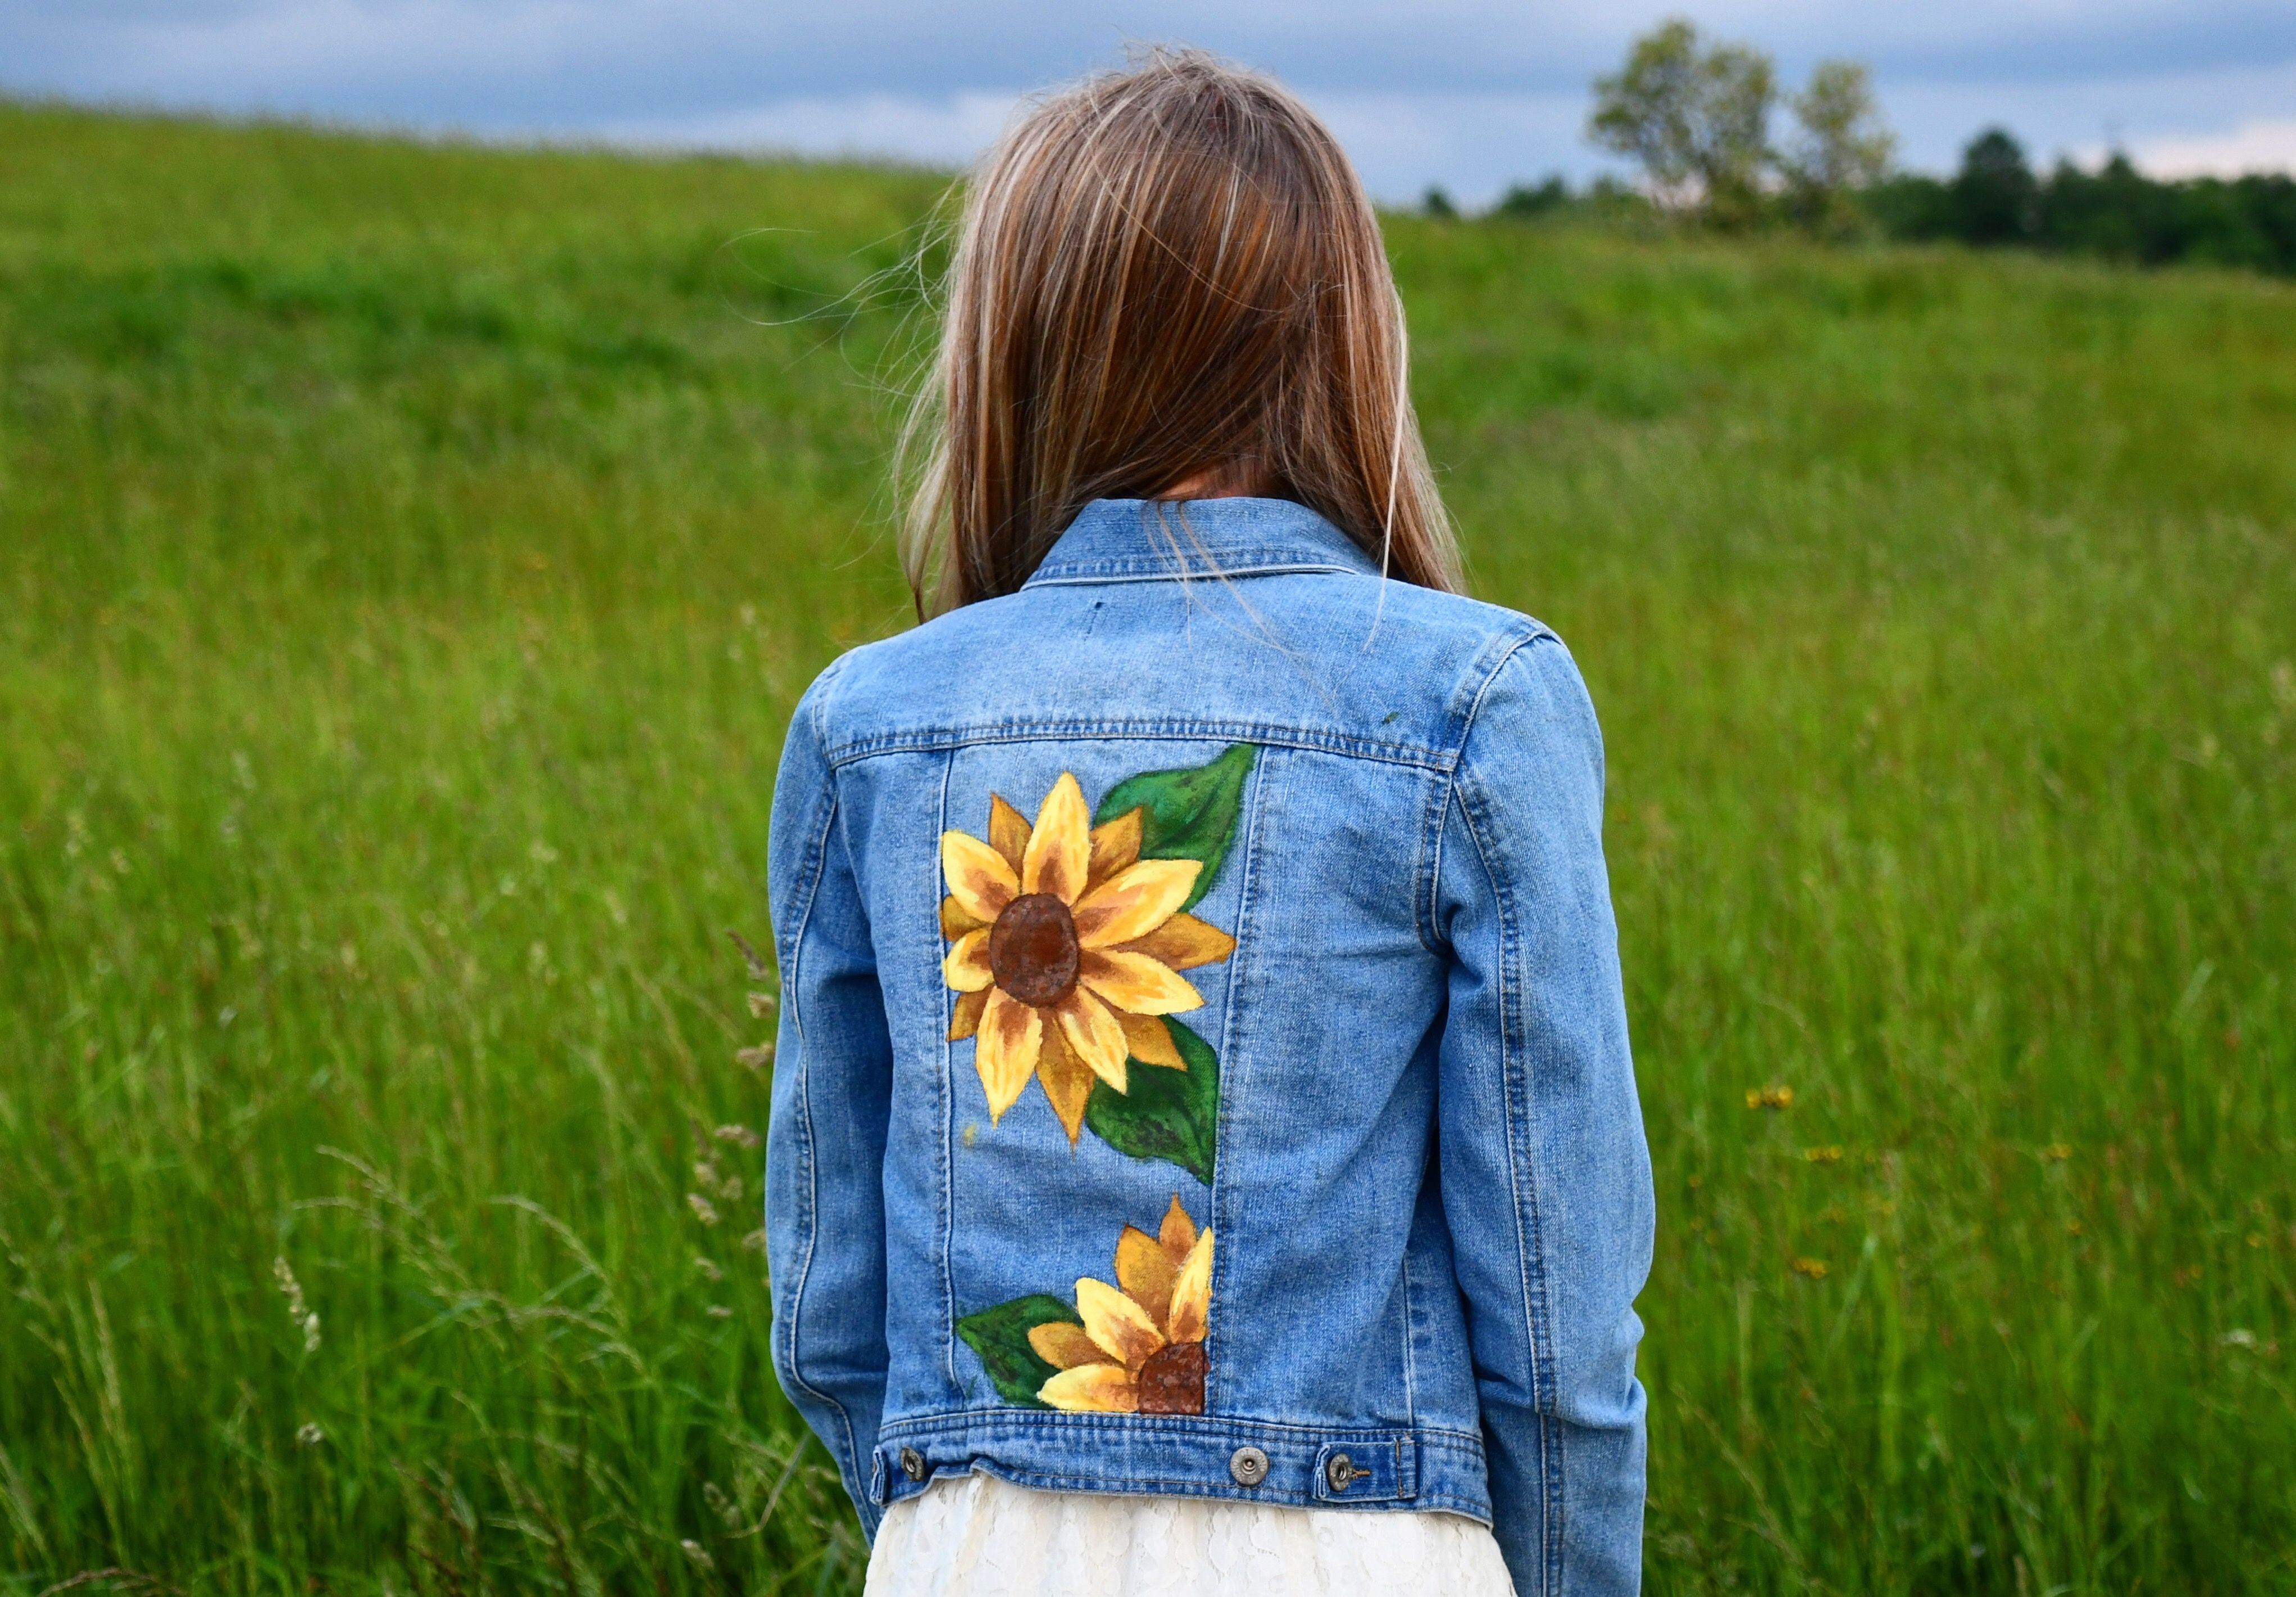 Sunflowers Painted On A Jean Jacket Jackets Painted Denim Fashion [ 2843 x 4087 Pixel ]